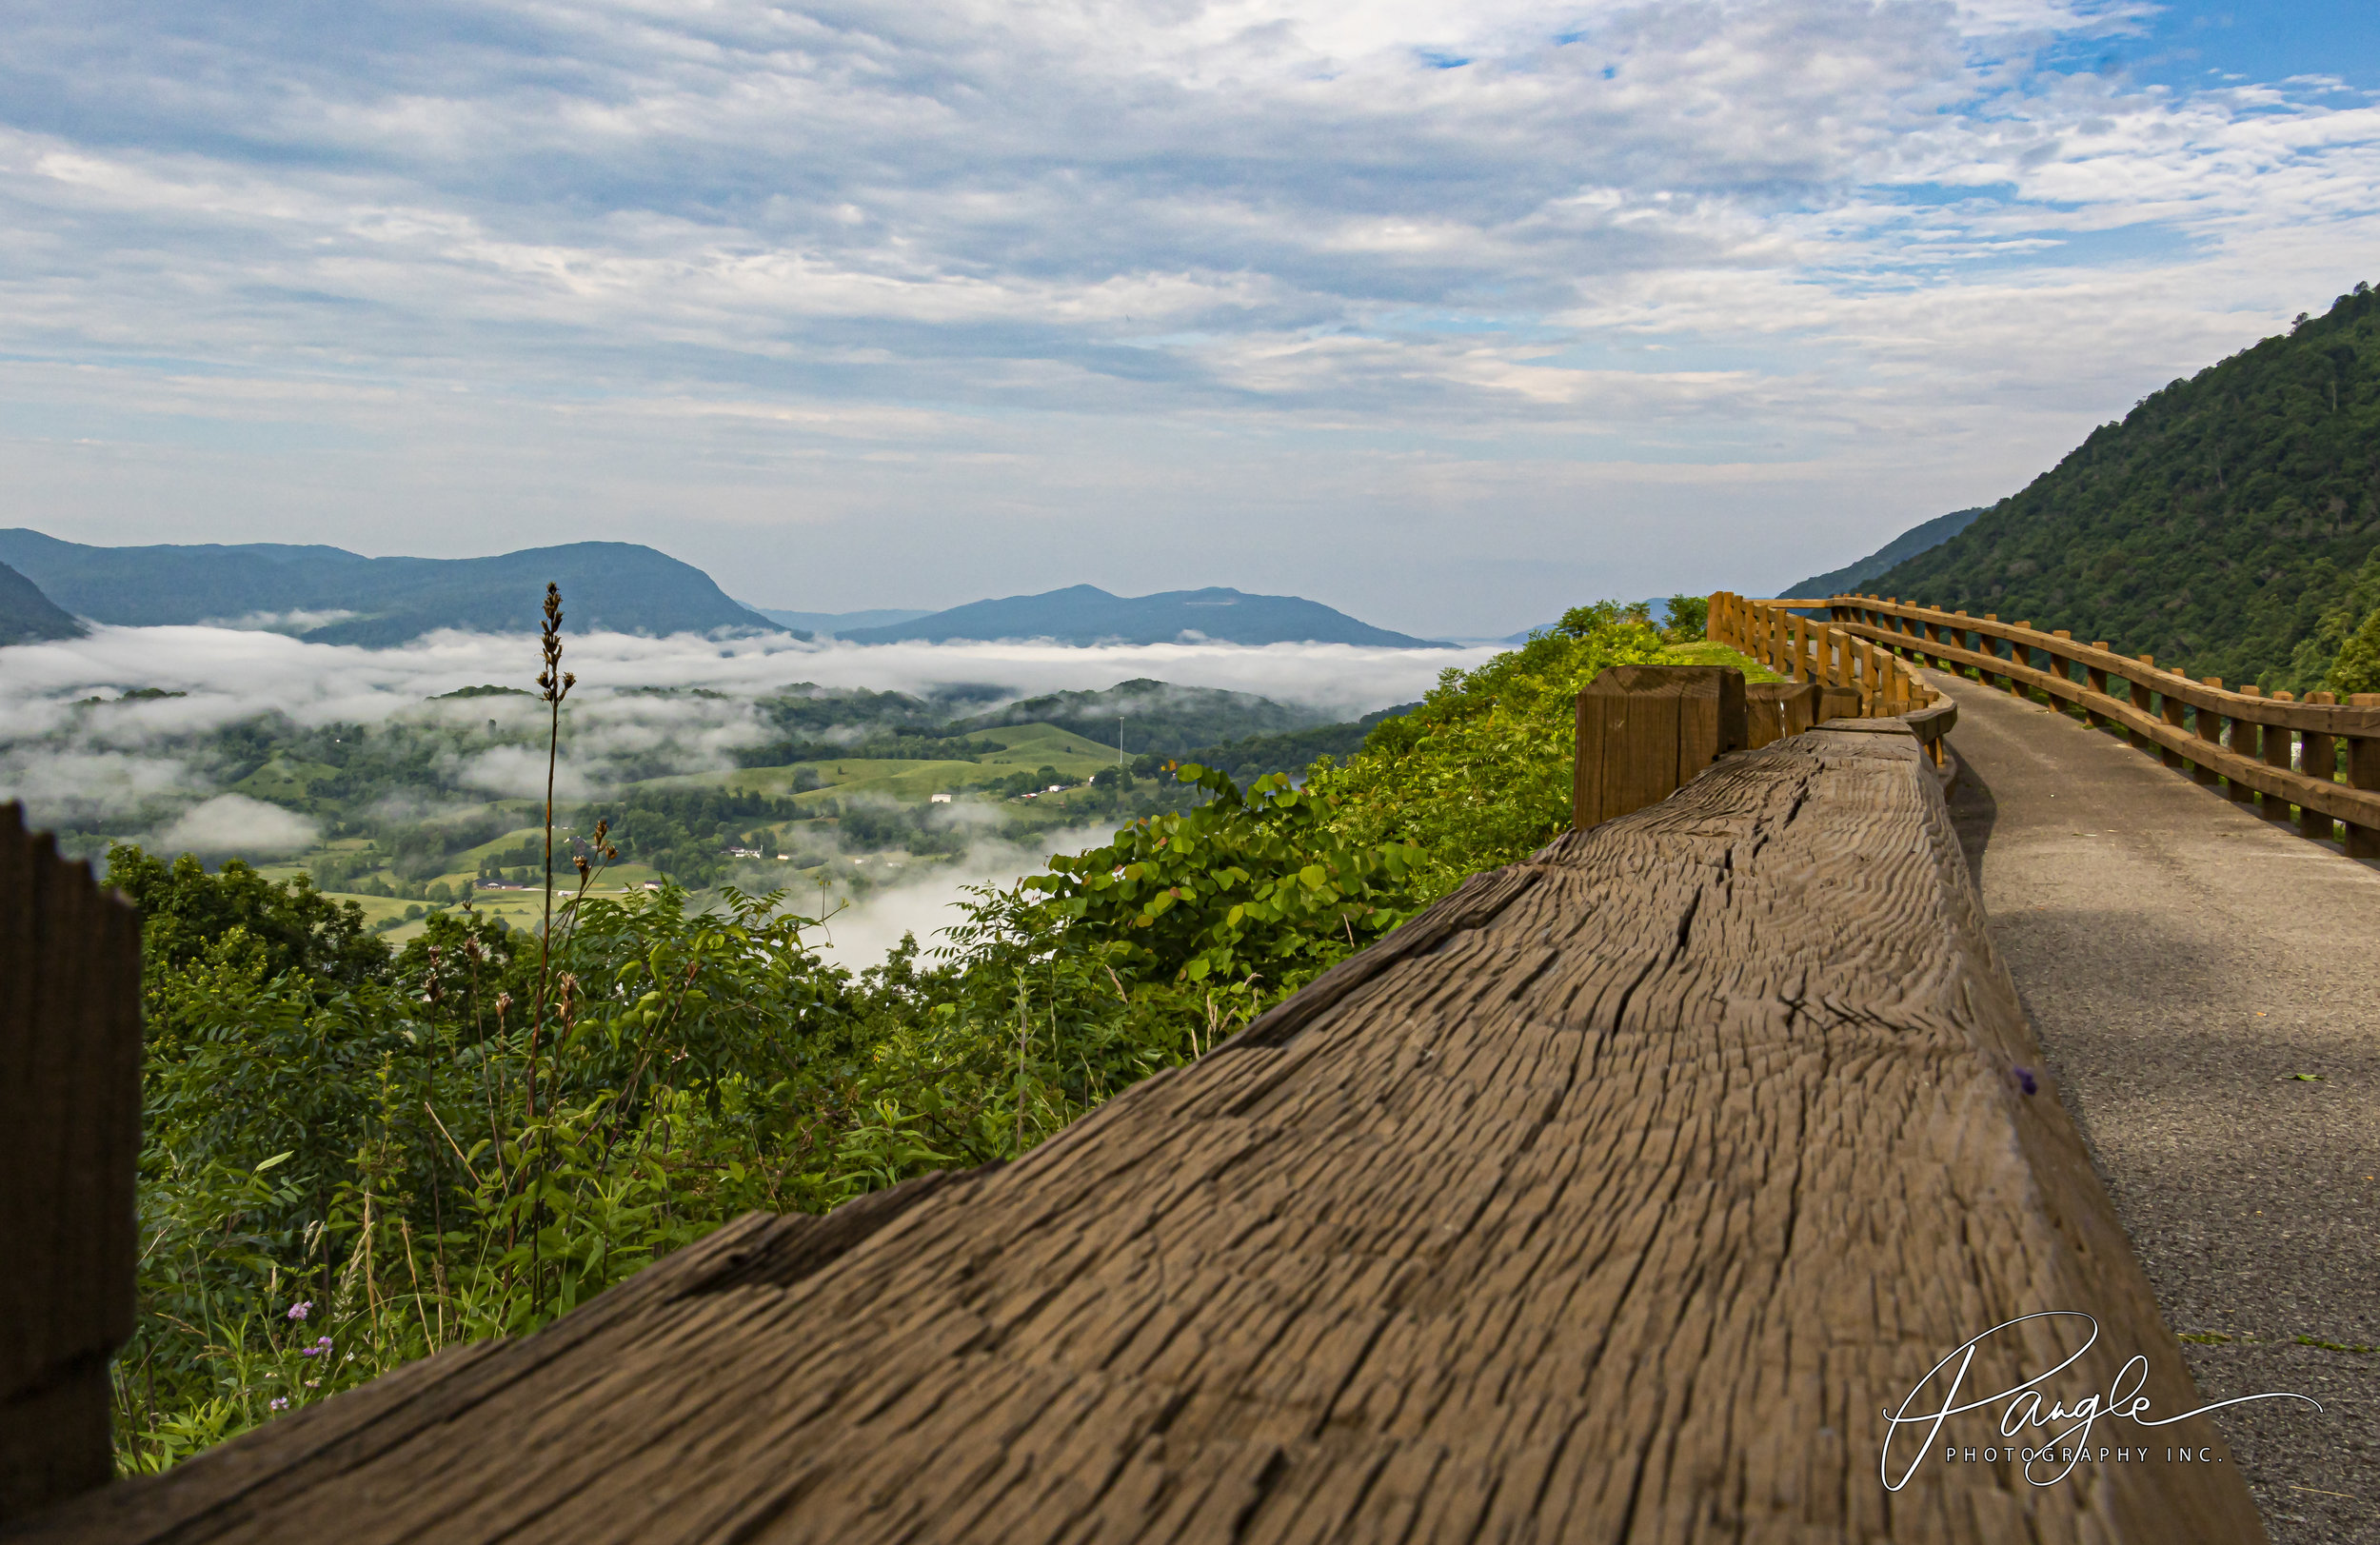 Driving up to the Graphene Research Center in Wise, VA the other day and stopped for a min to have a look at the beautiful Powell Valley Overlook. God's artwork is truly amazing!!